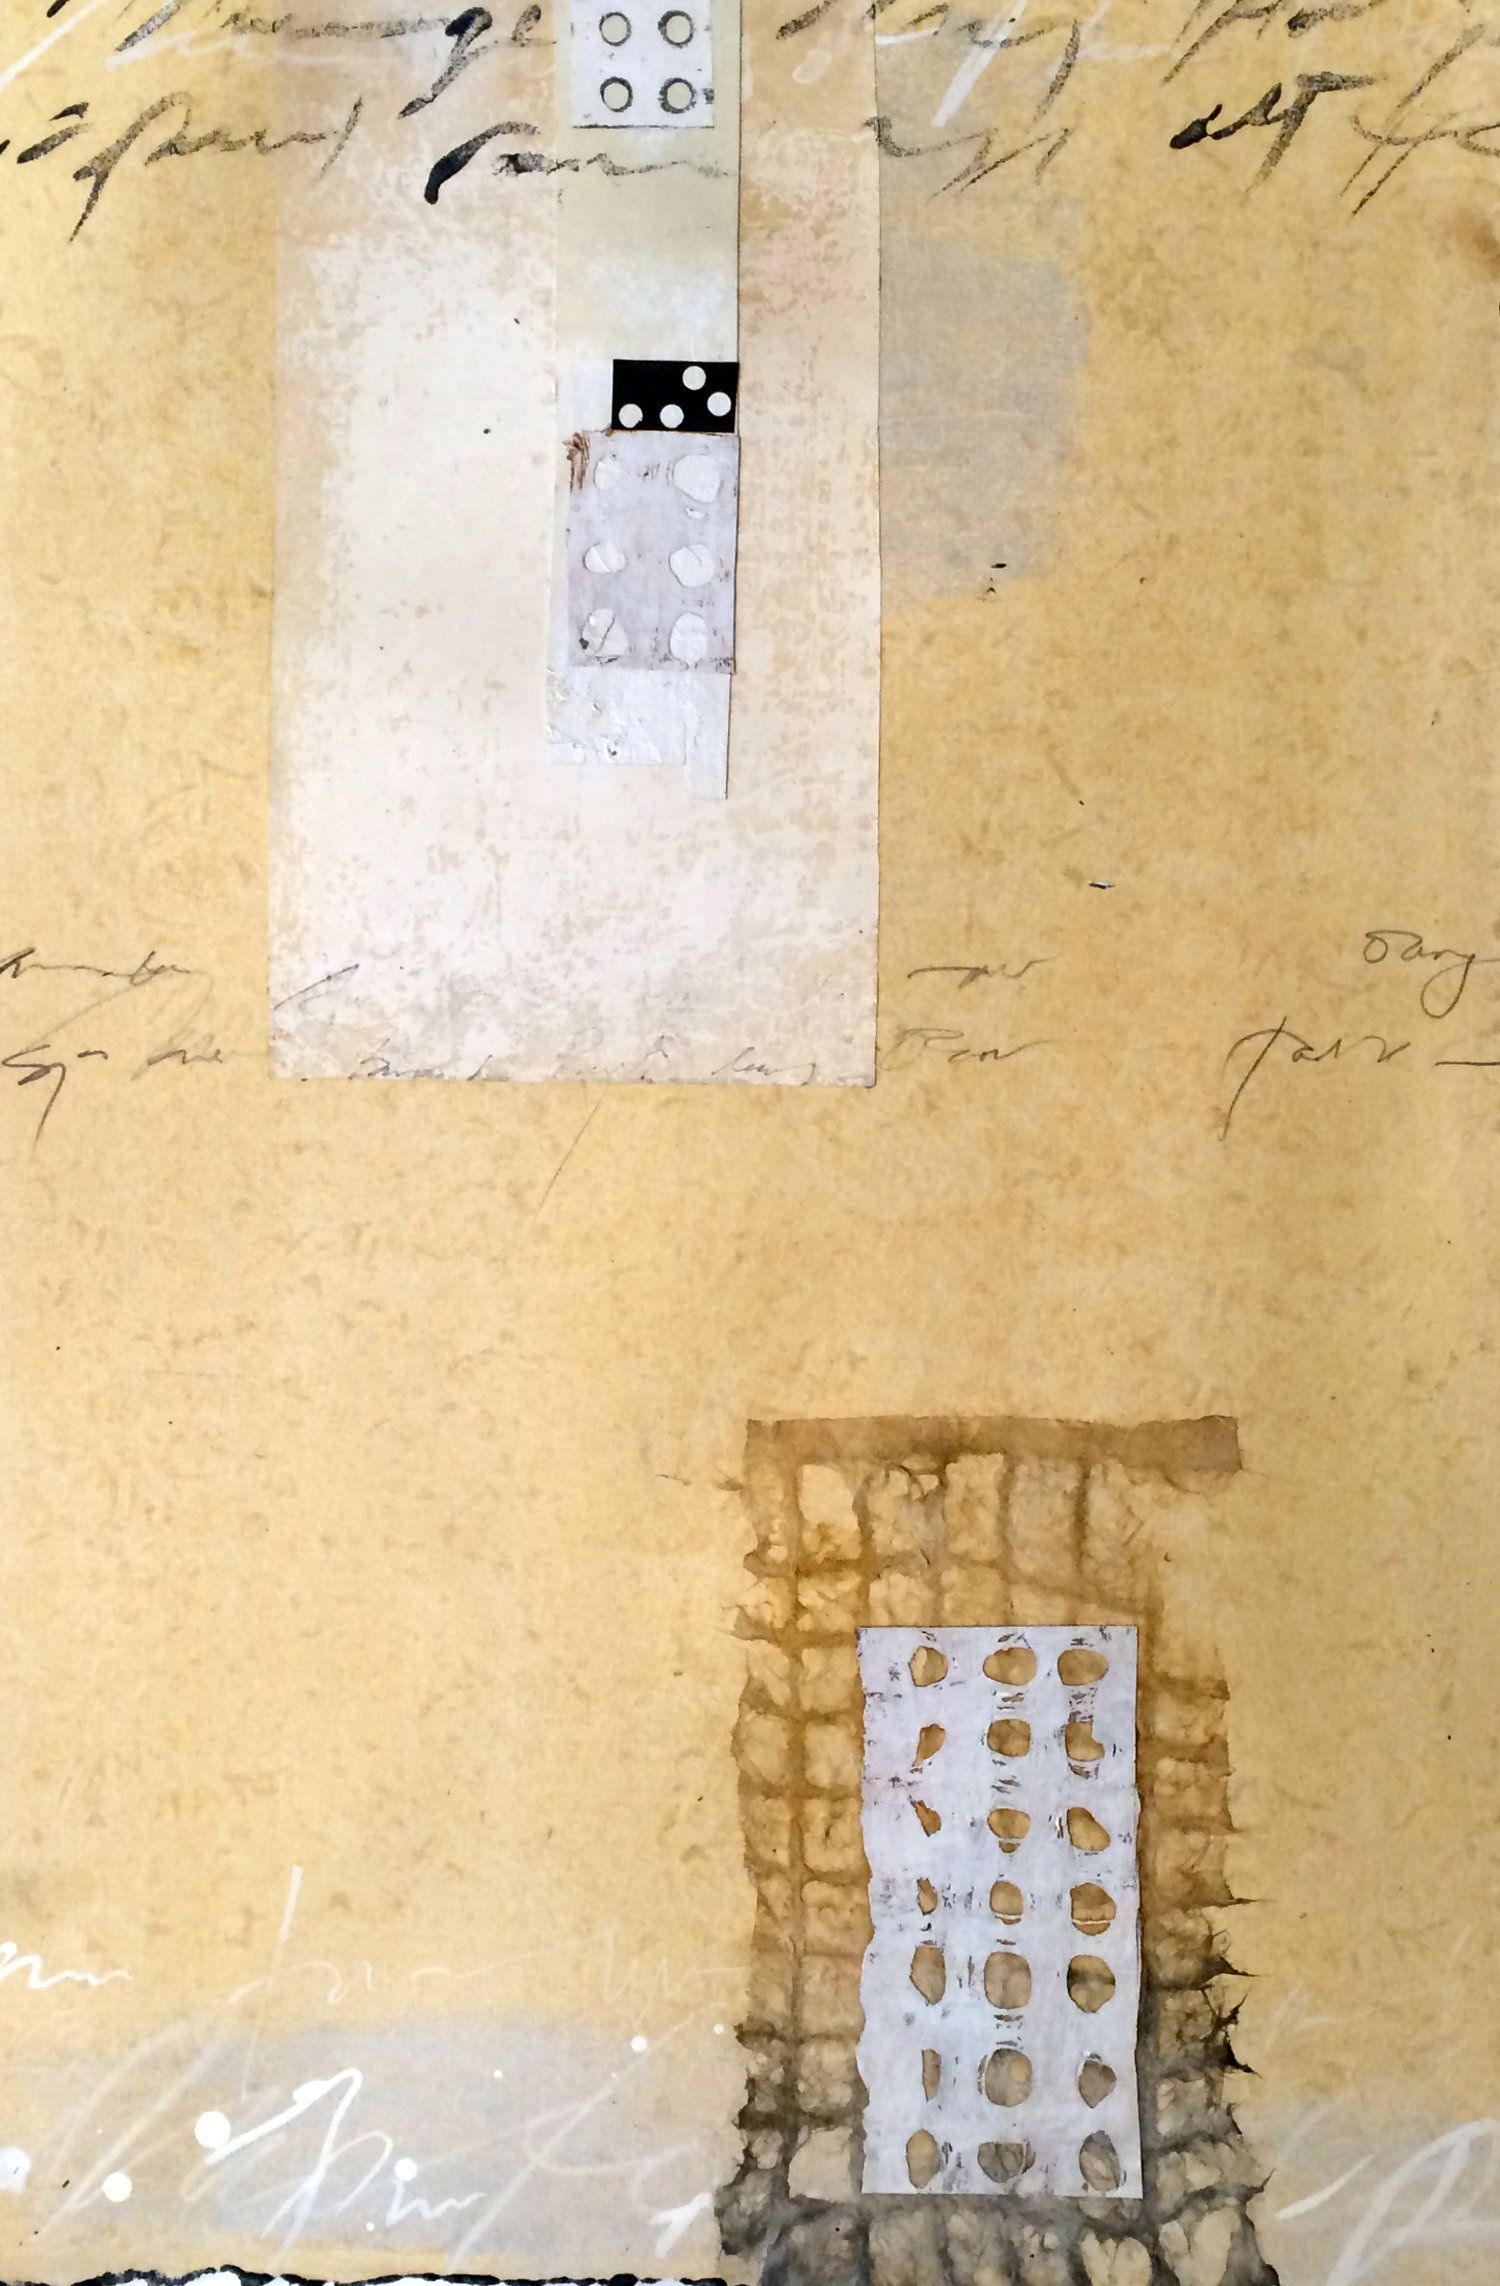 Abacus VI, Susanne Carmack | Abstract Mixed Media & Collage ...